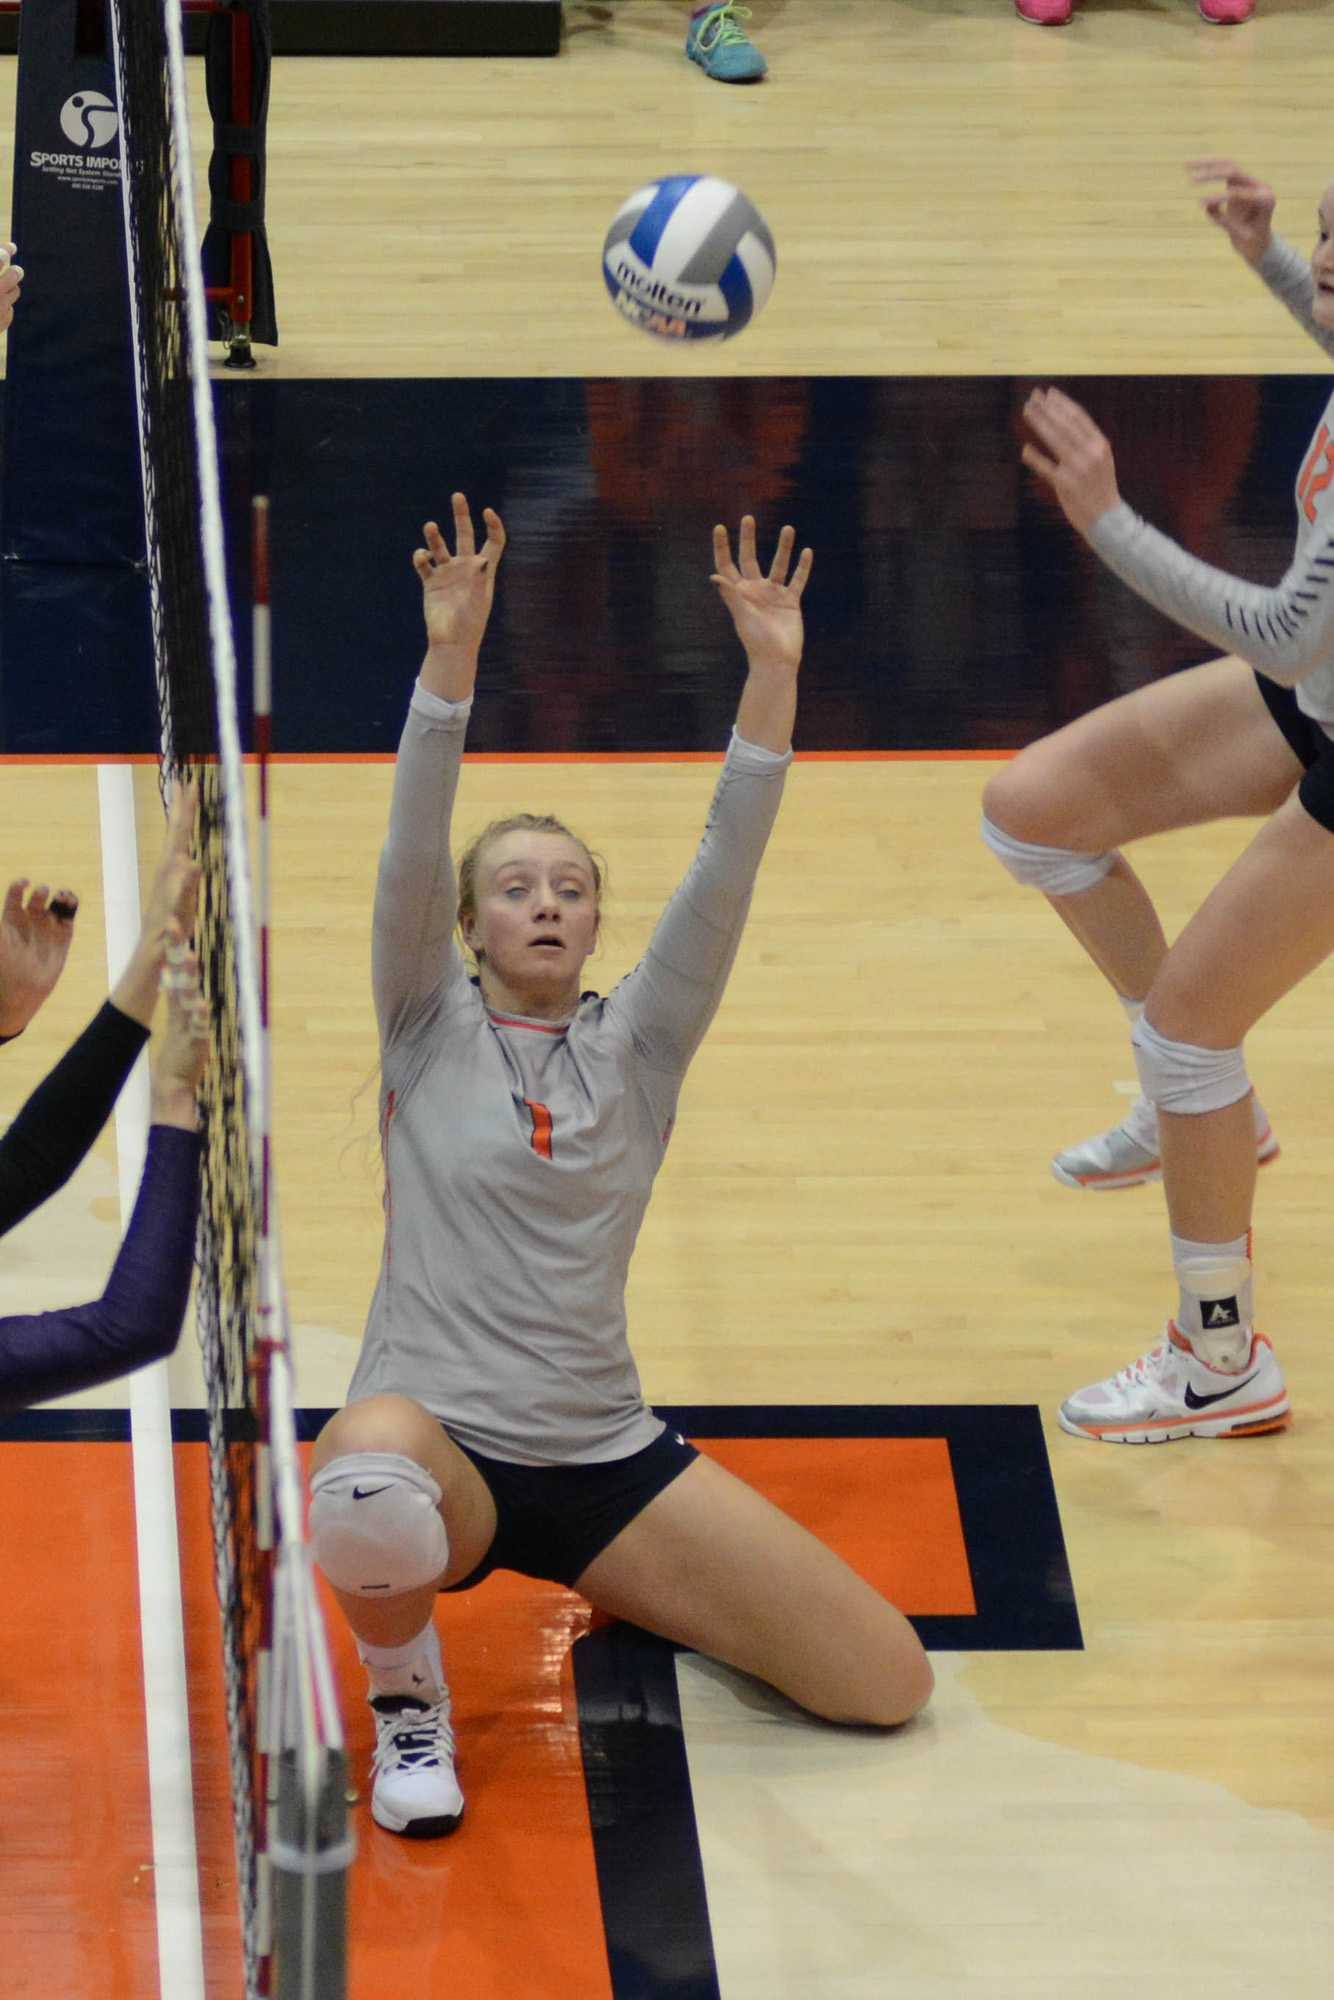 Illinois' Jordyn Poulter sets the ball during the match against Northwestern at Huff Hall on Nov. 7, 2015. Poulter is this week's Illini of the Week.